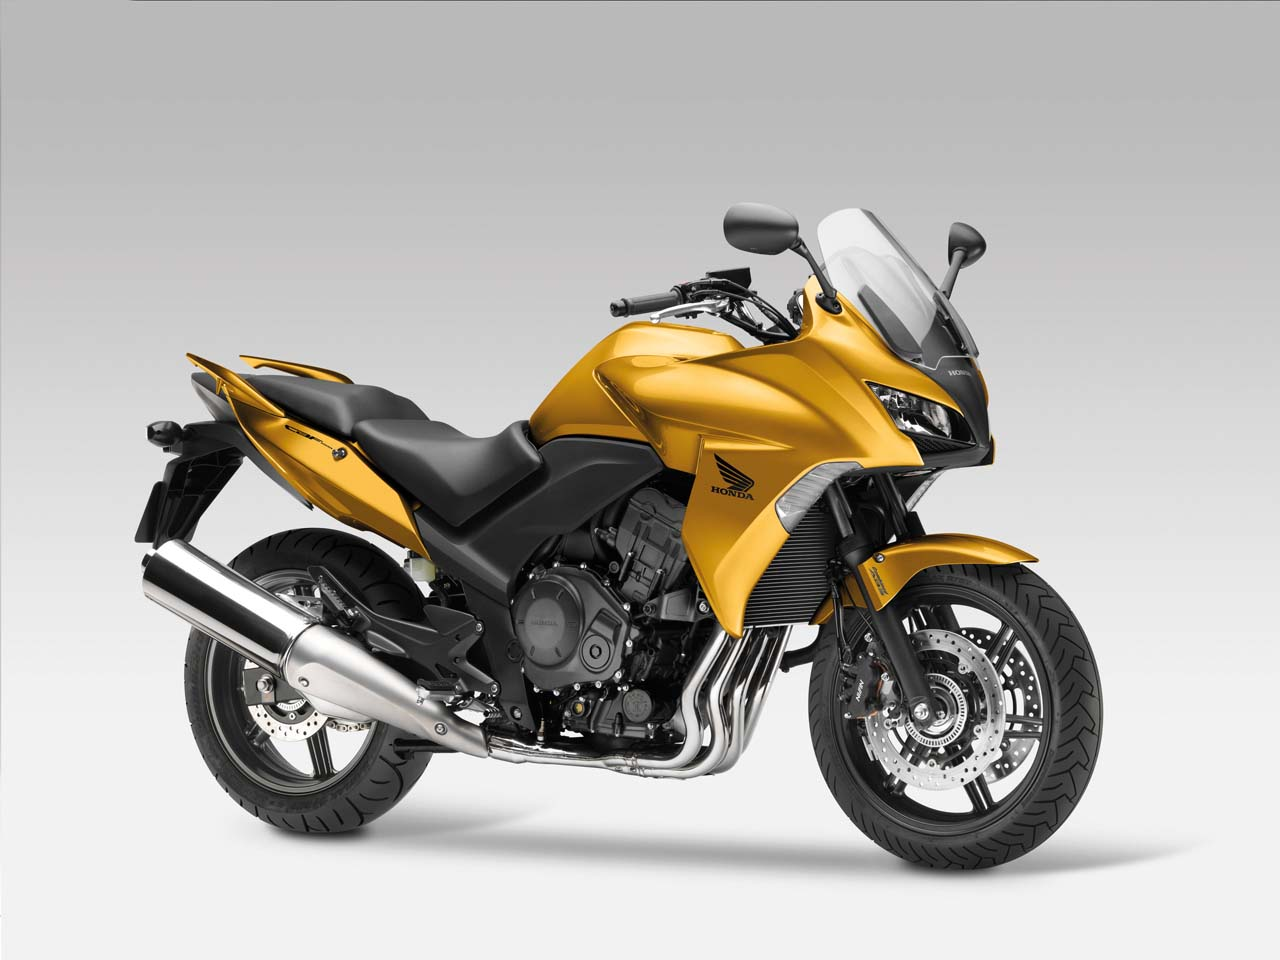 3D Super Hero Wallpaper http://3dwallpaperbox.blogspot.com/2011/11/super-hero-honda-moter-bike.html